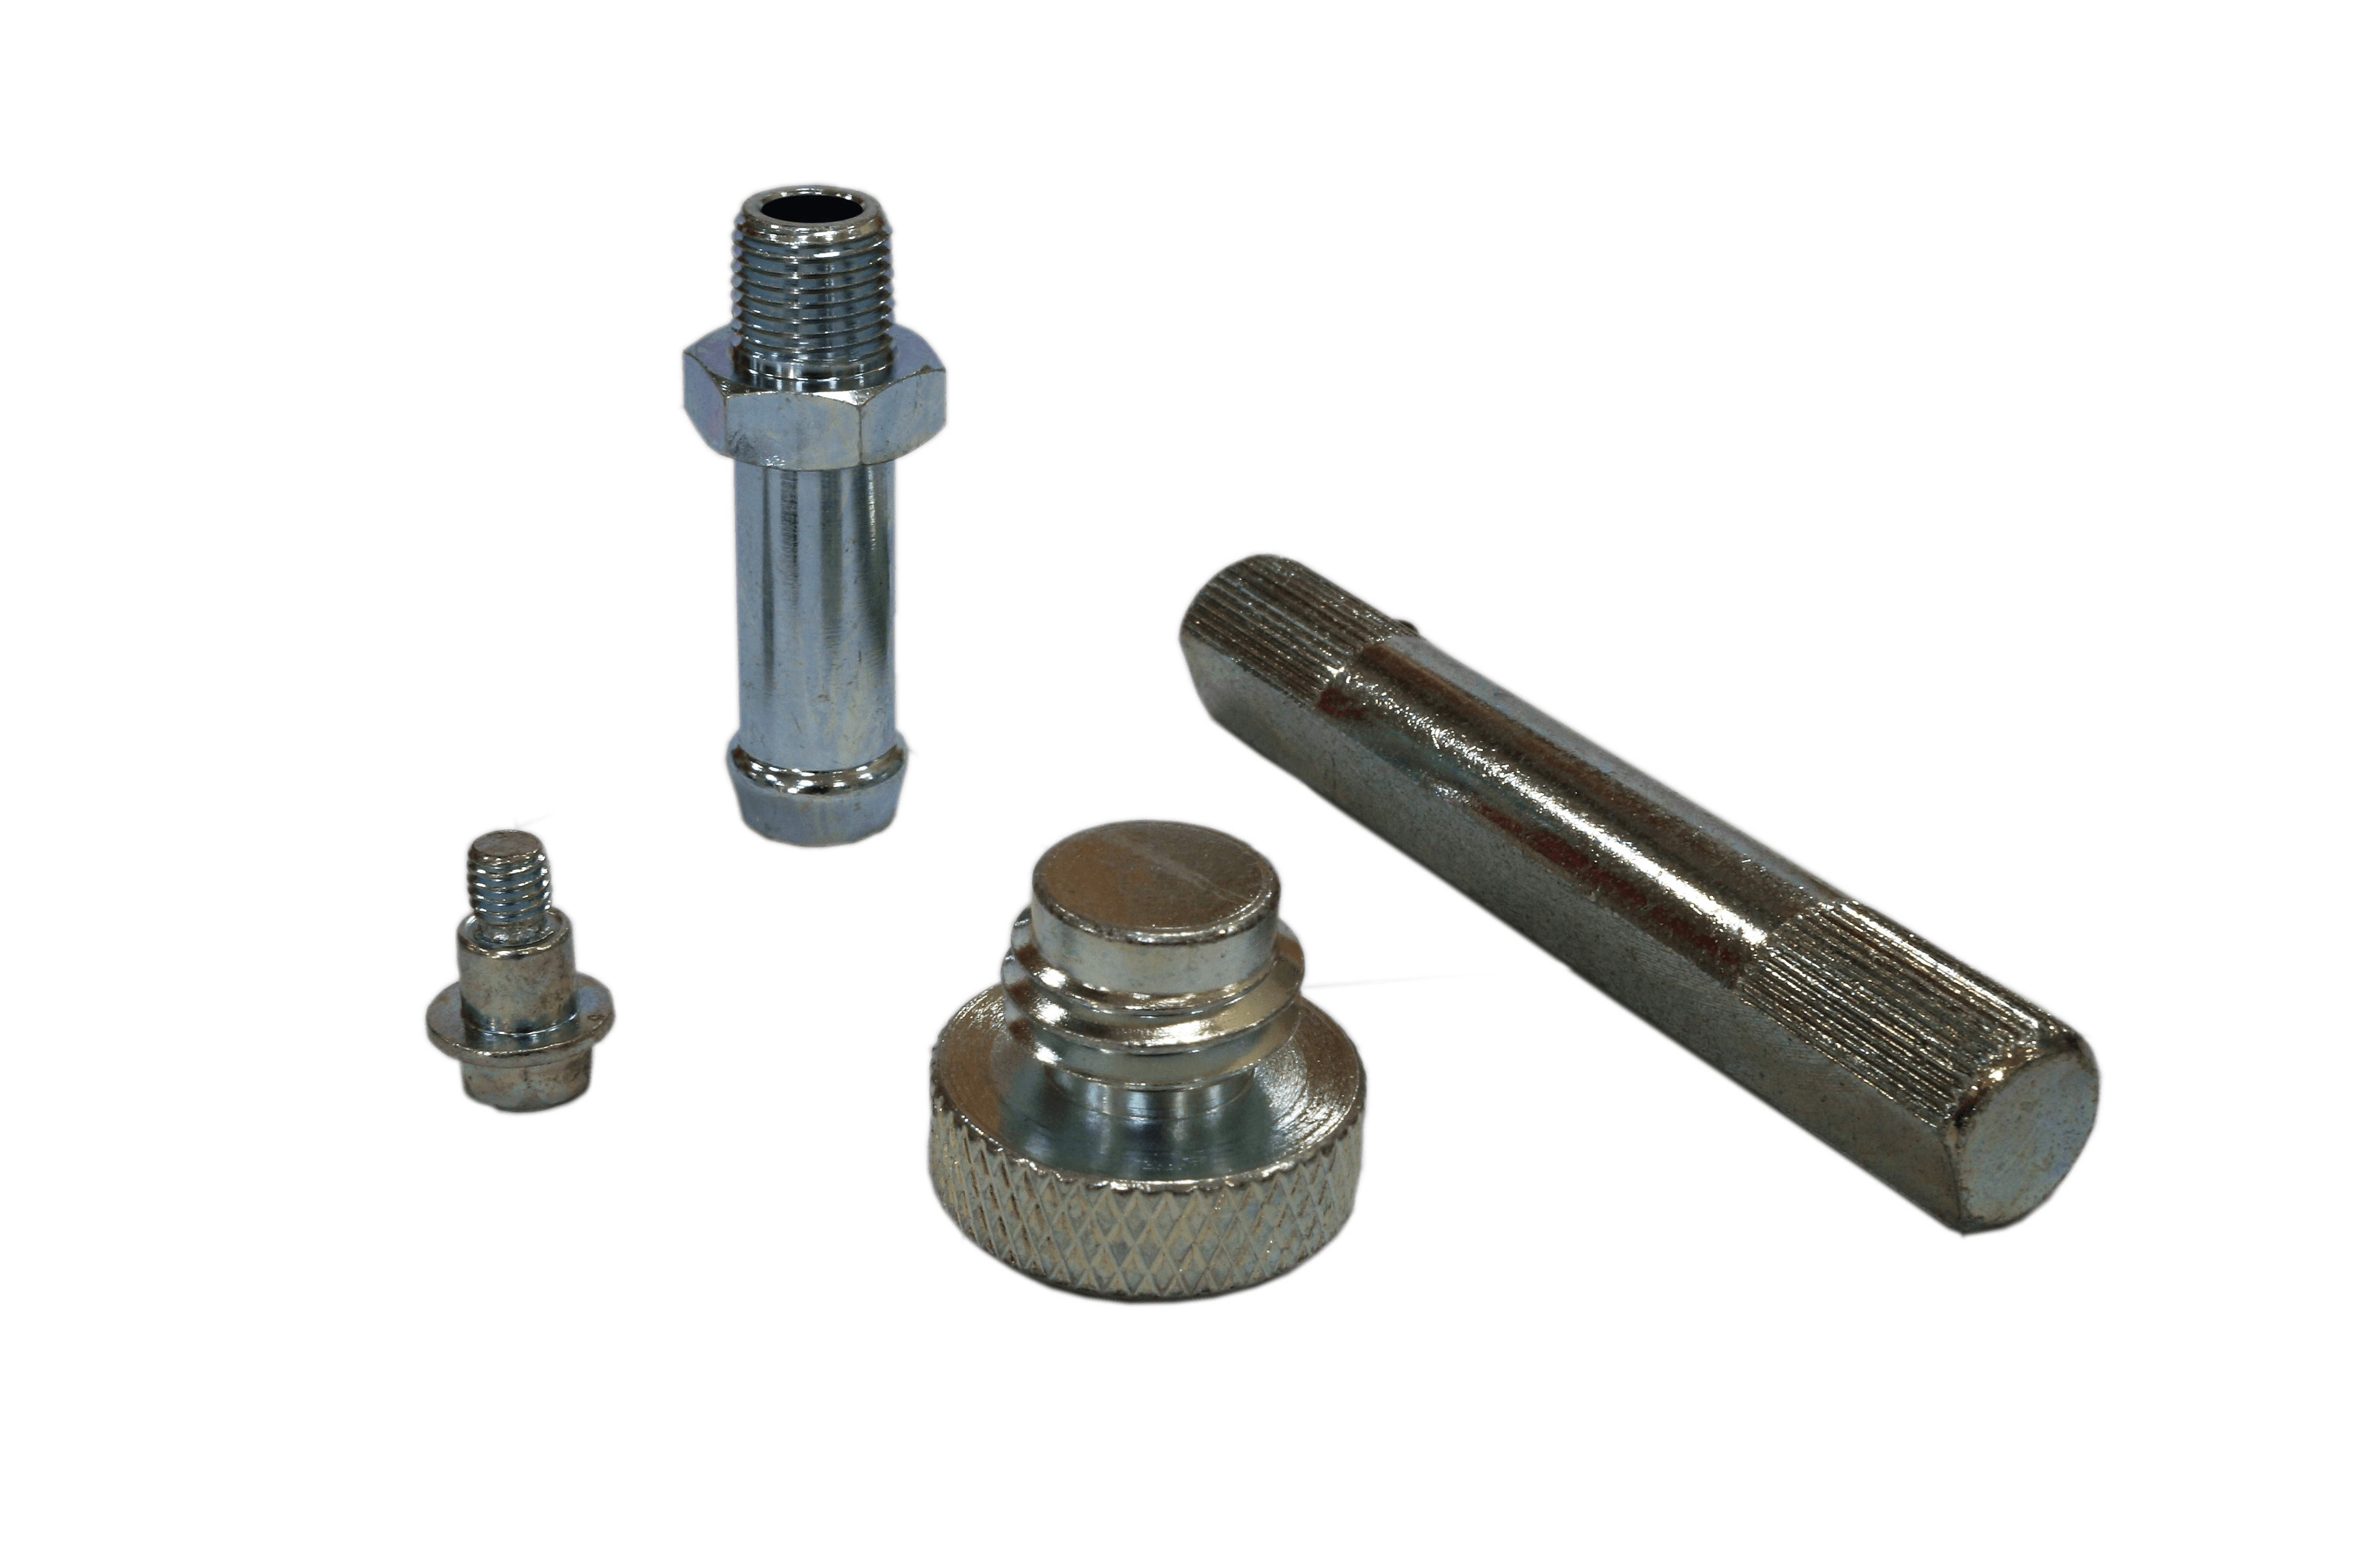 Bus Bolts for Vehicle Fastener made by Sunny Screw Industry 三能螺栓工業股份有限公司 - MatchSupplier.com